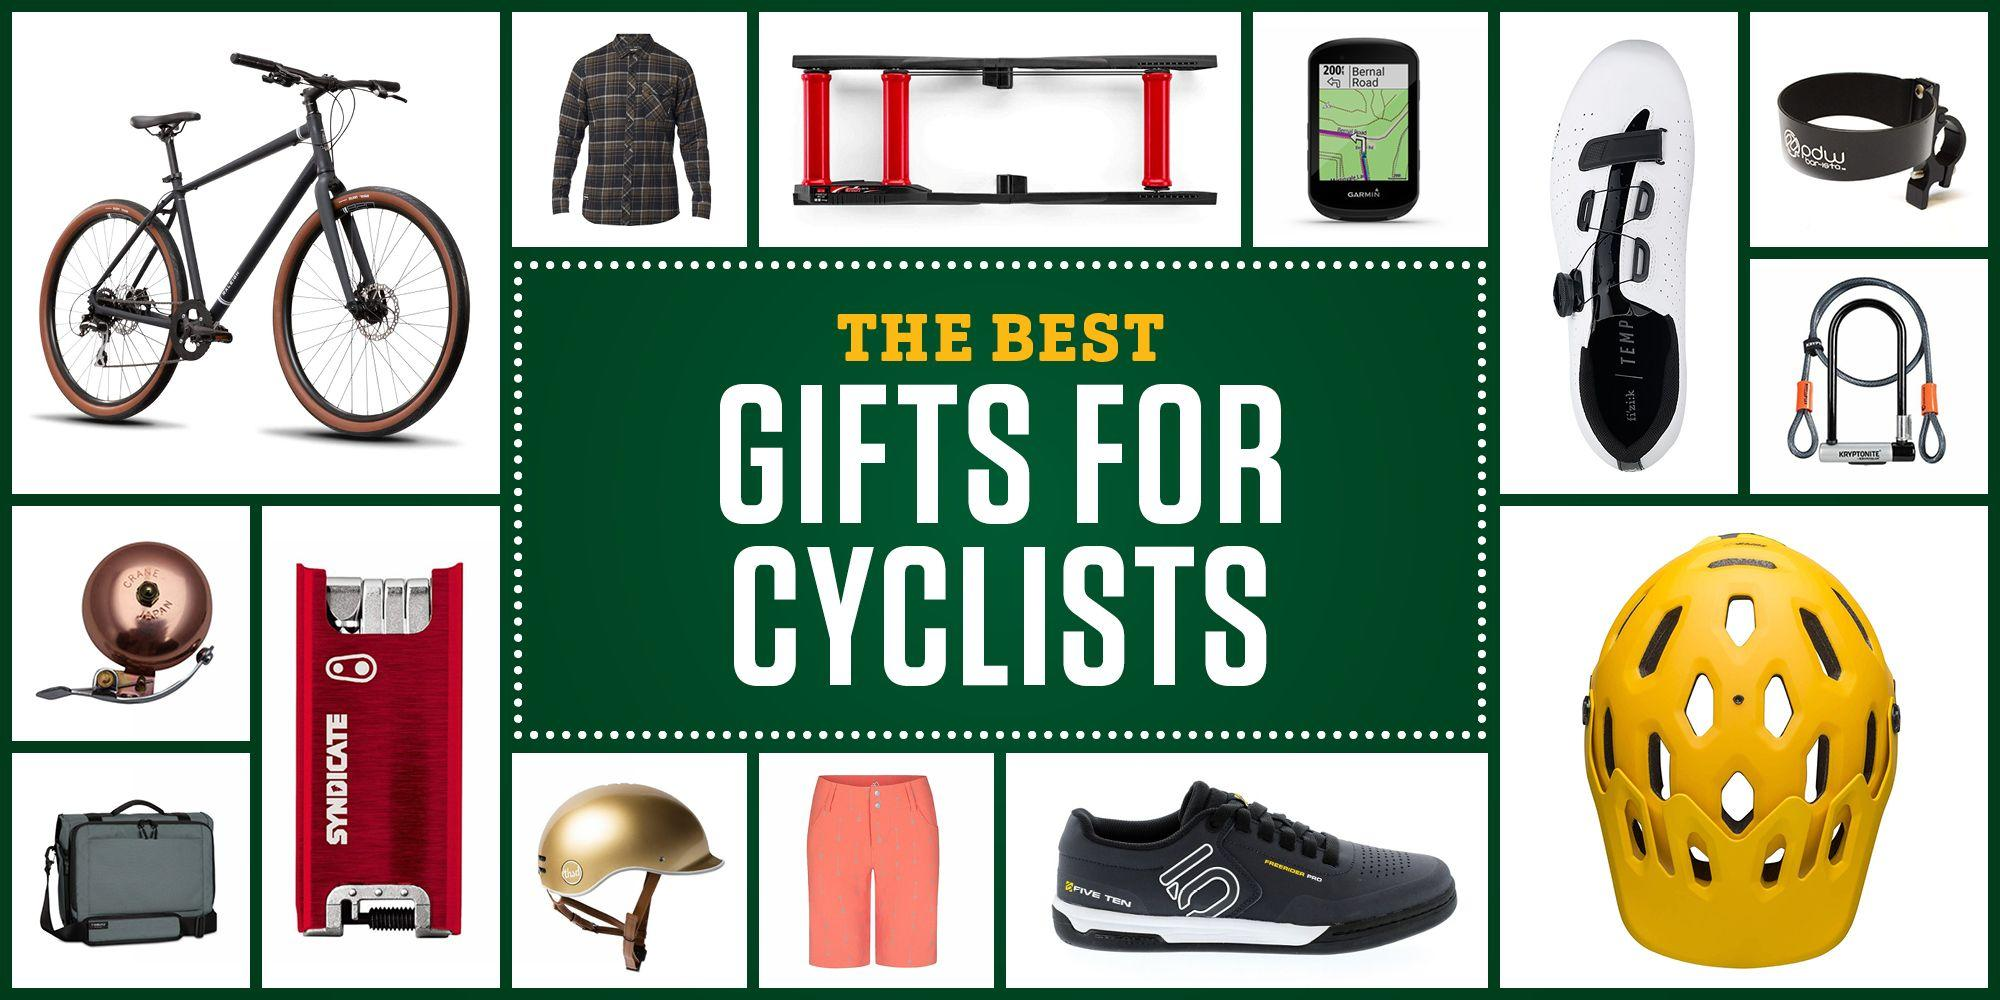 <p>Whether the cyclist in your life spends most of their waking hours in spandex or just enjoys cruising around town on two wheels, the holidays are the perfect time to help them upgrade their gear. In that spirit, we've compiled some of the best offerings for 2019.</p>